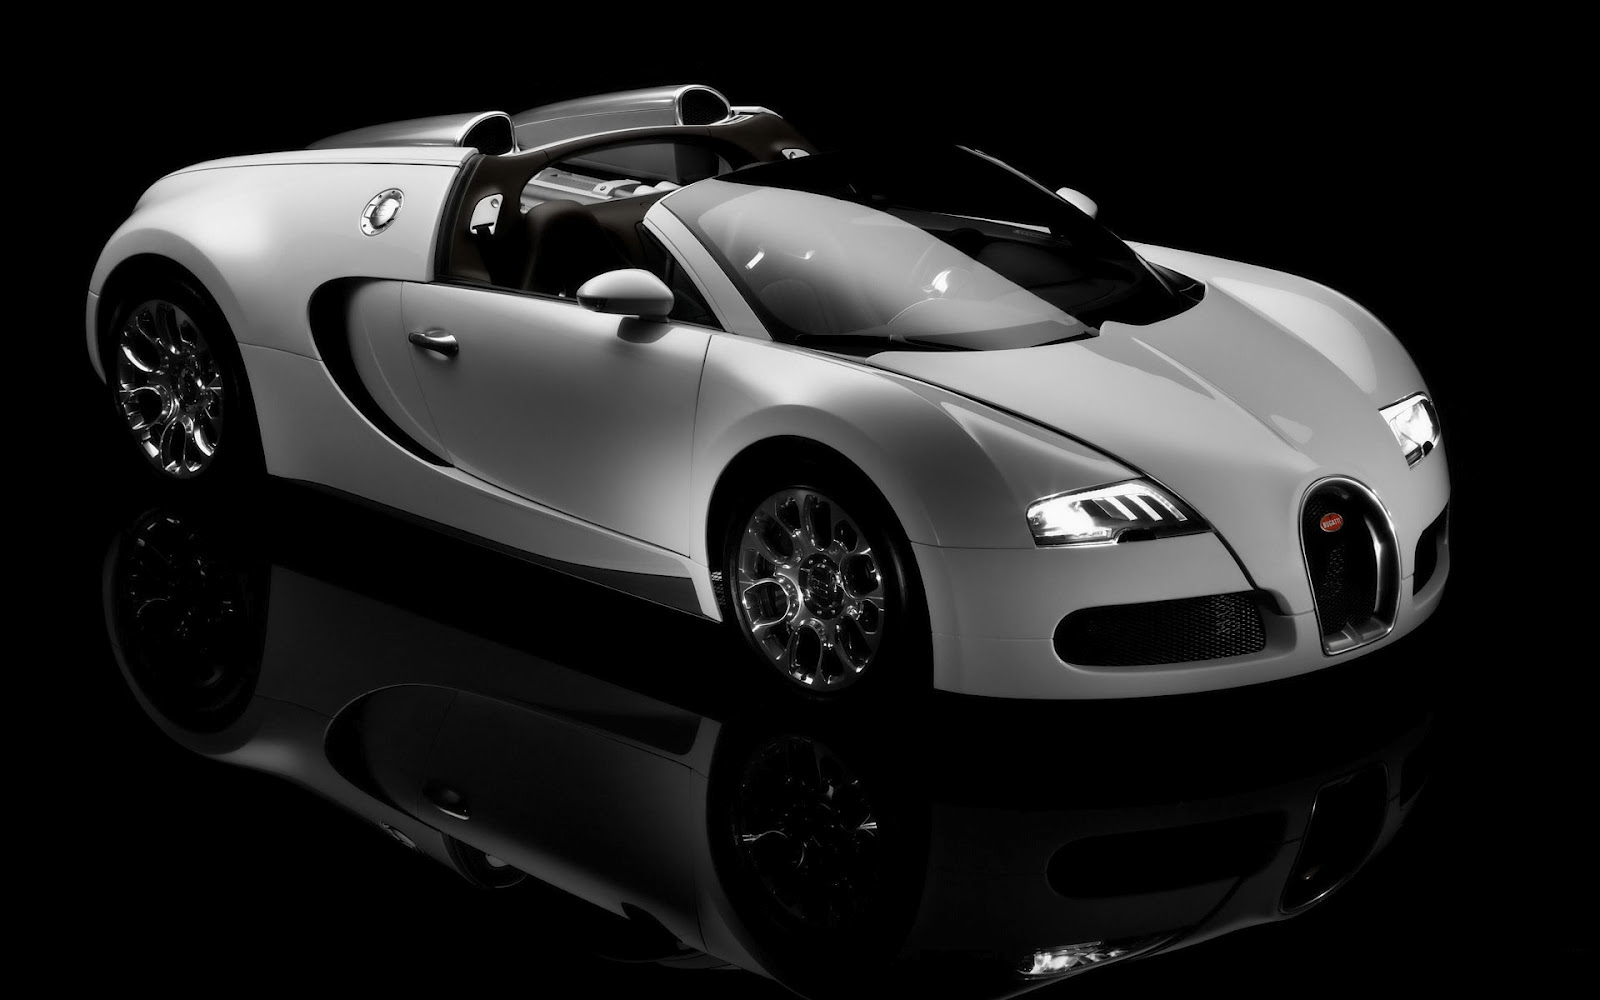 wallpapers and pictures bugatti veyron wallpaper 1920 x 1200. Black Bedroom Furniture Sets. Home Design Ideas